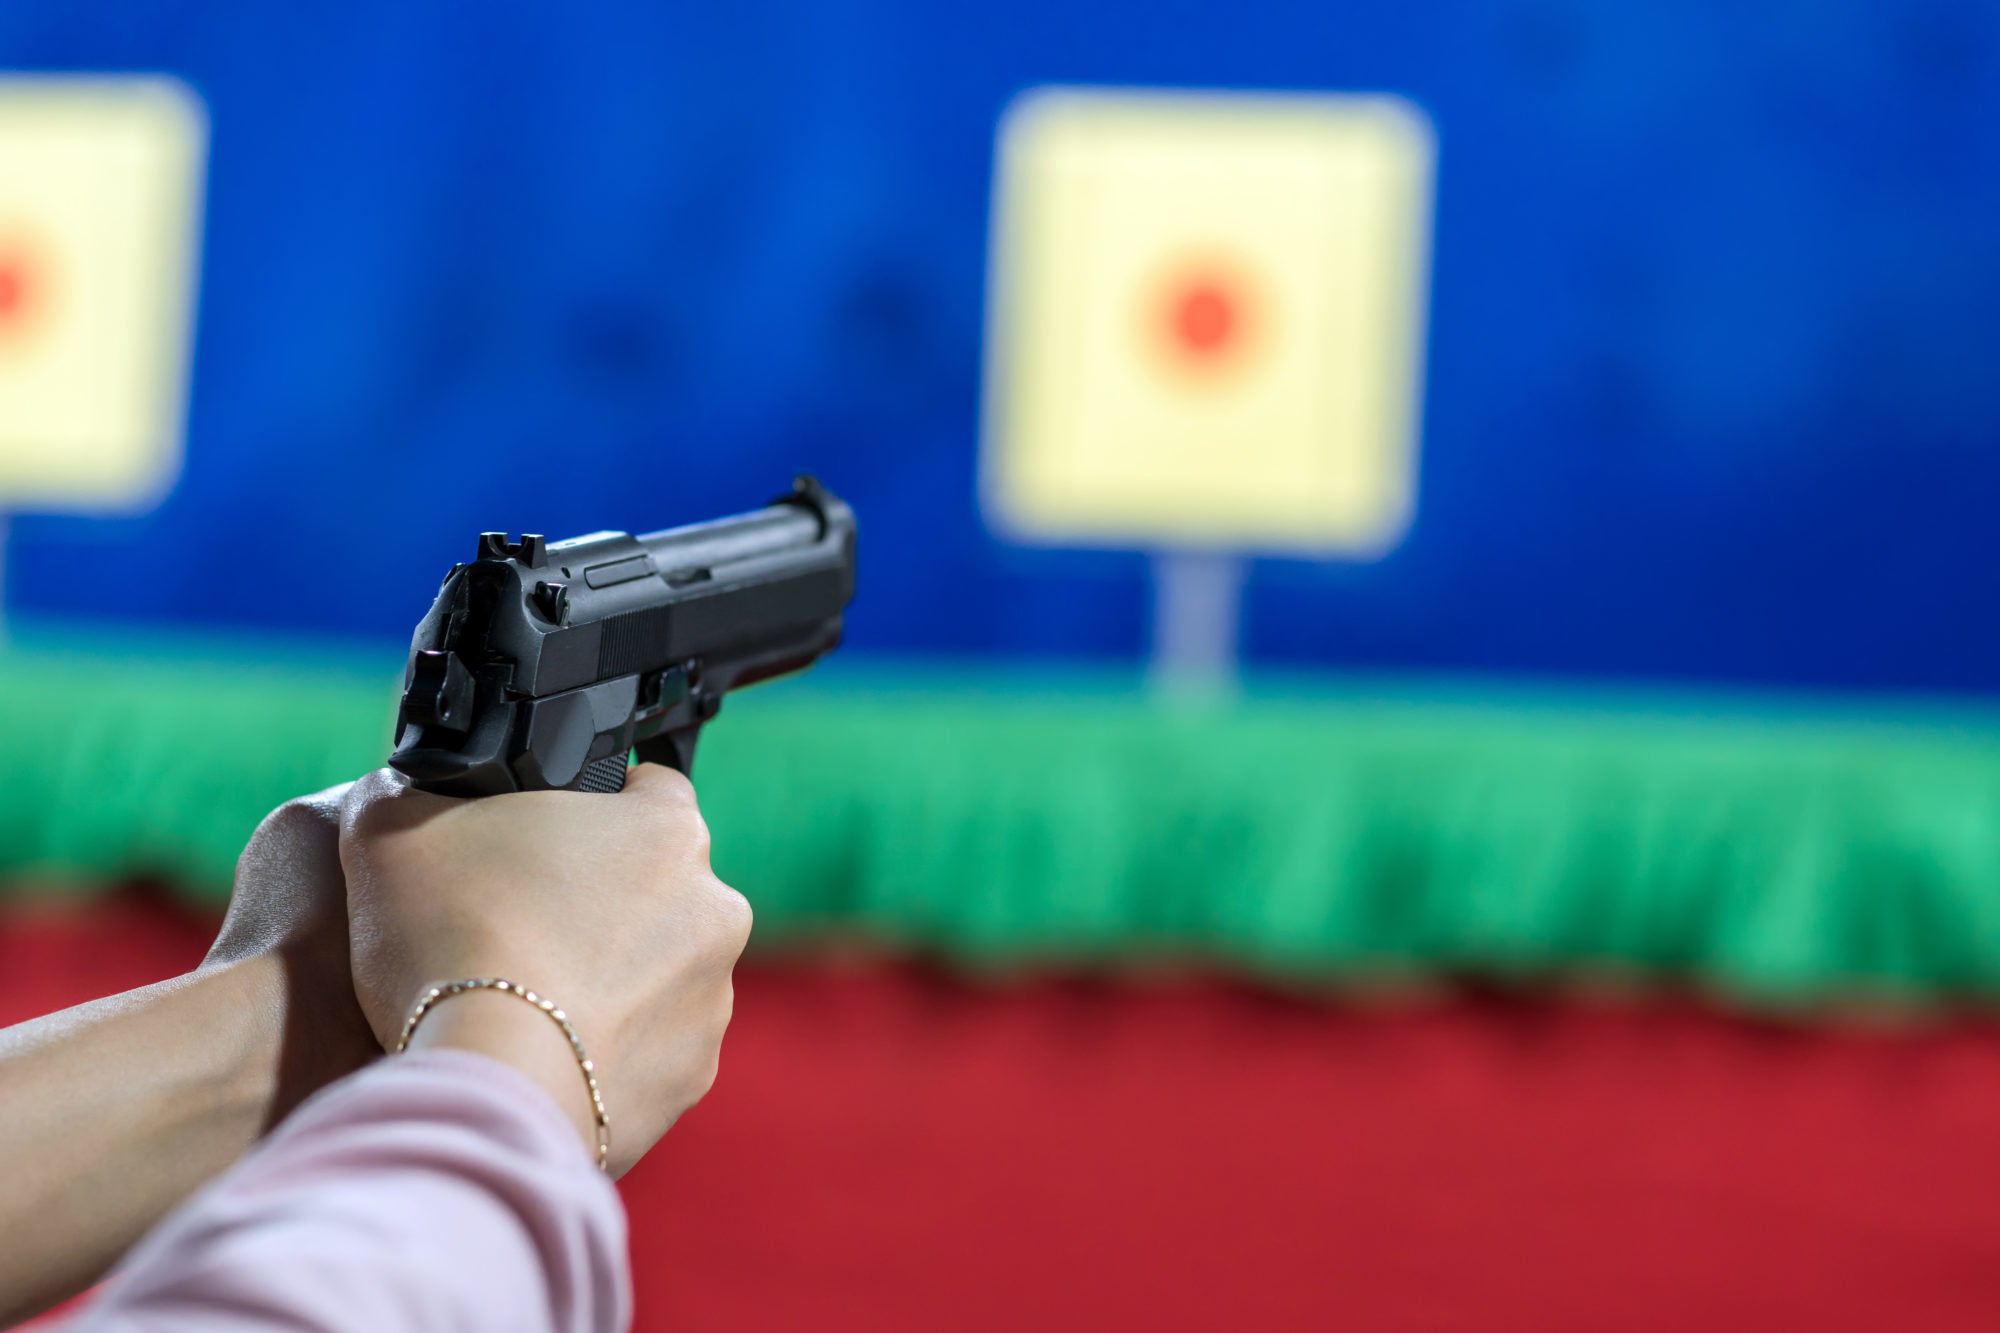 Air pistol shooting experience in Rovinj – Rovigno